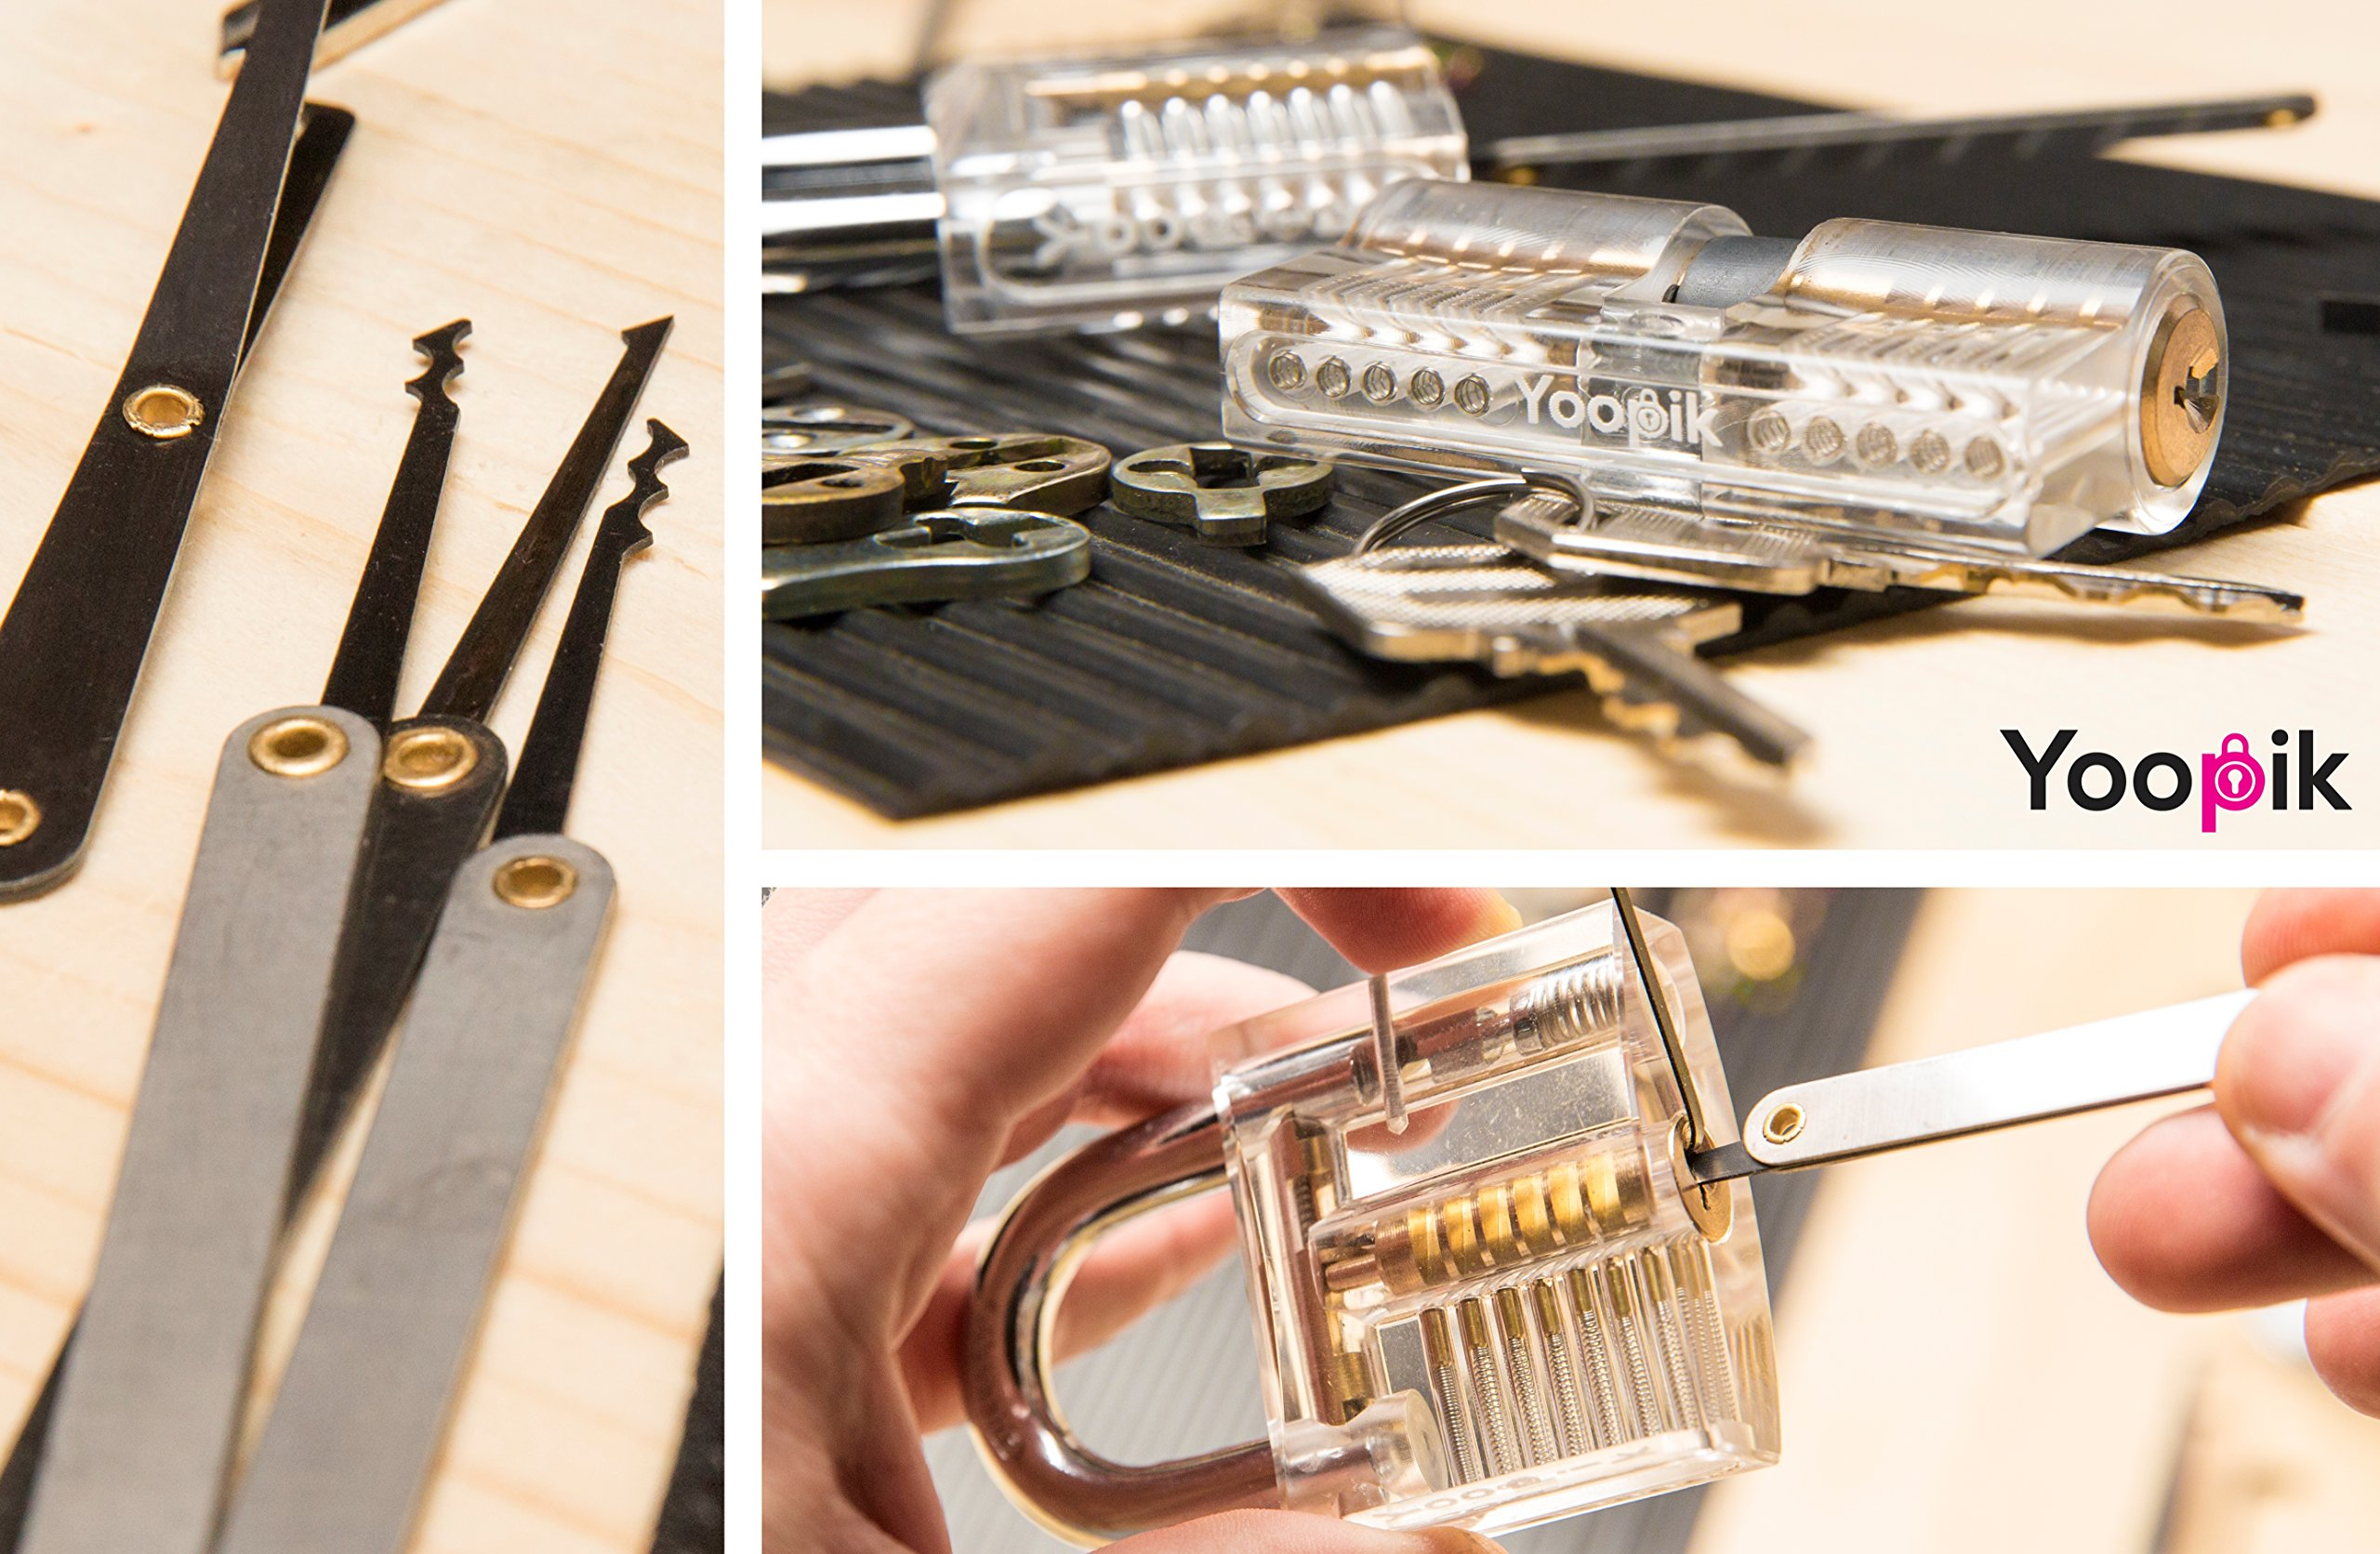 Yoopik Lock Picking Set 15 Pieces with Clear Transparent Padlock and Euro Cylinder for Lockpicking Training and Practice, a Carrying Pouch and Ebook Guide